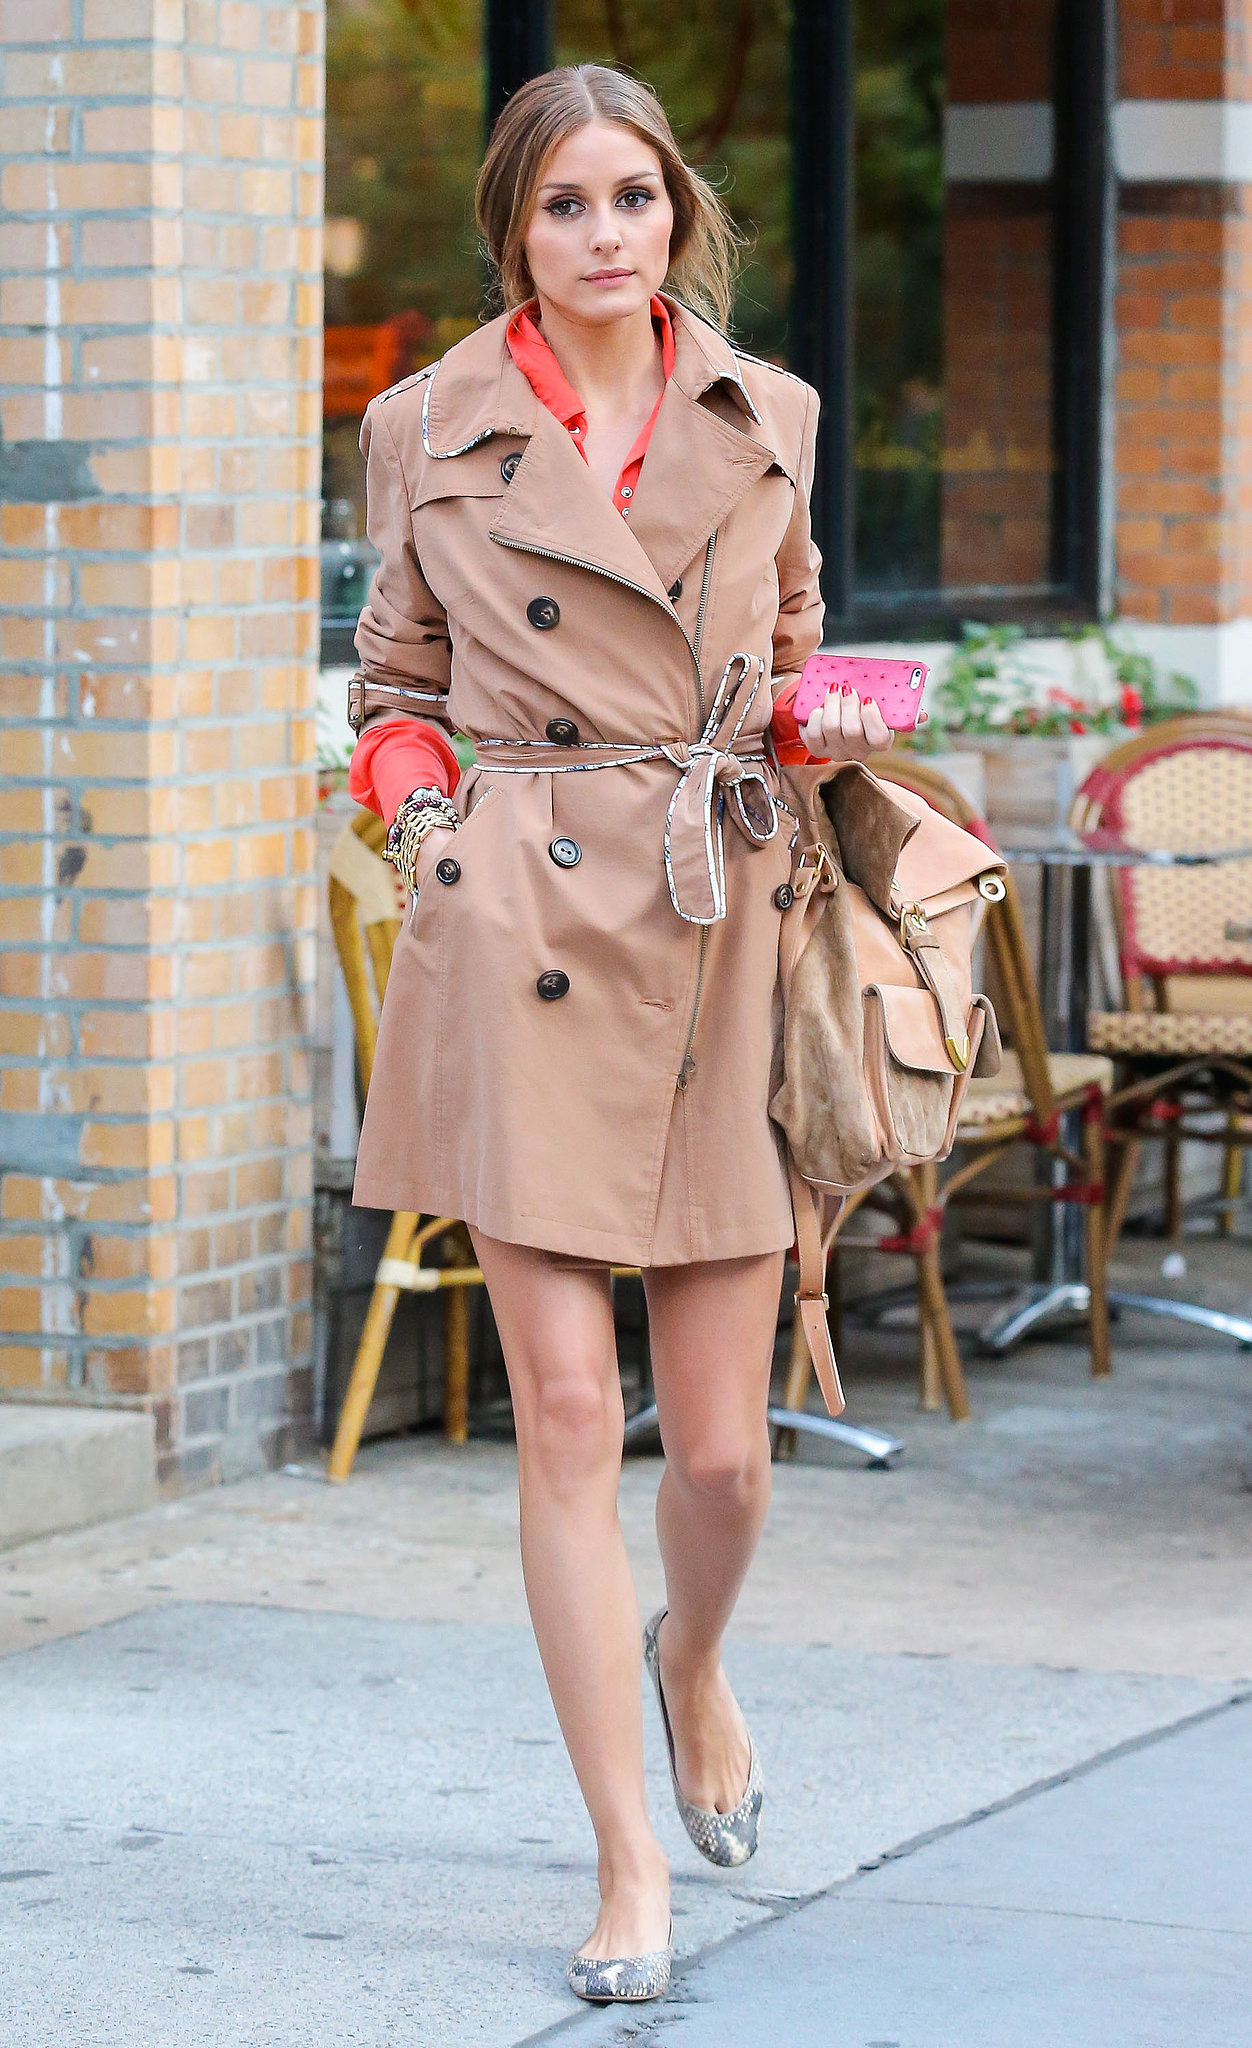 While out to lunch in NYC, Olivia Palermo layered up in a chic trench coat with cool piping, then finished with snakeskin flats.